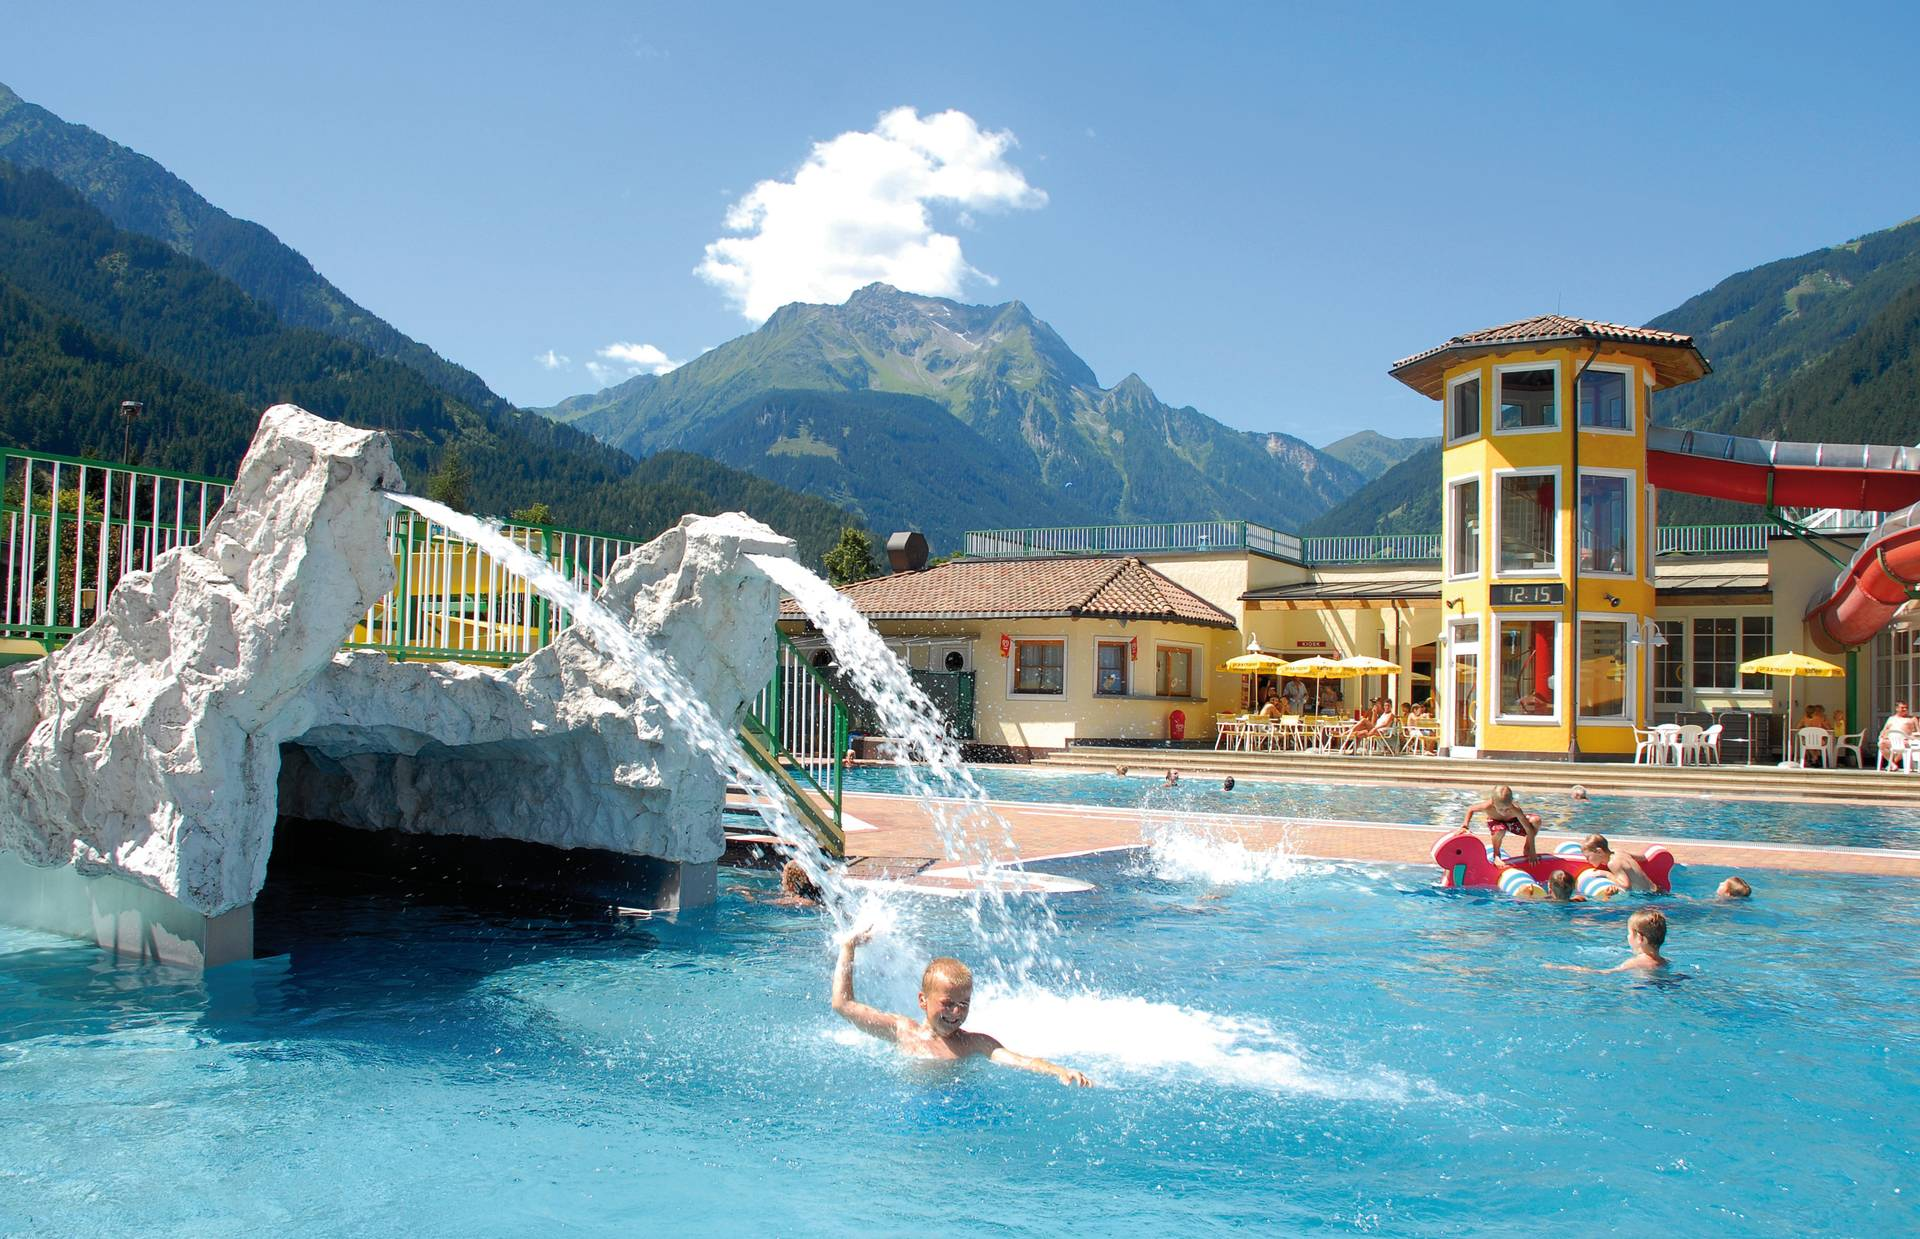 The outdoor pool in the Mayrhofen adventure pool offers wonderful cooling on hot days.